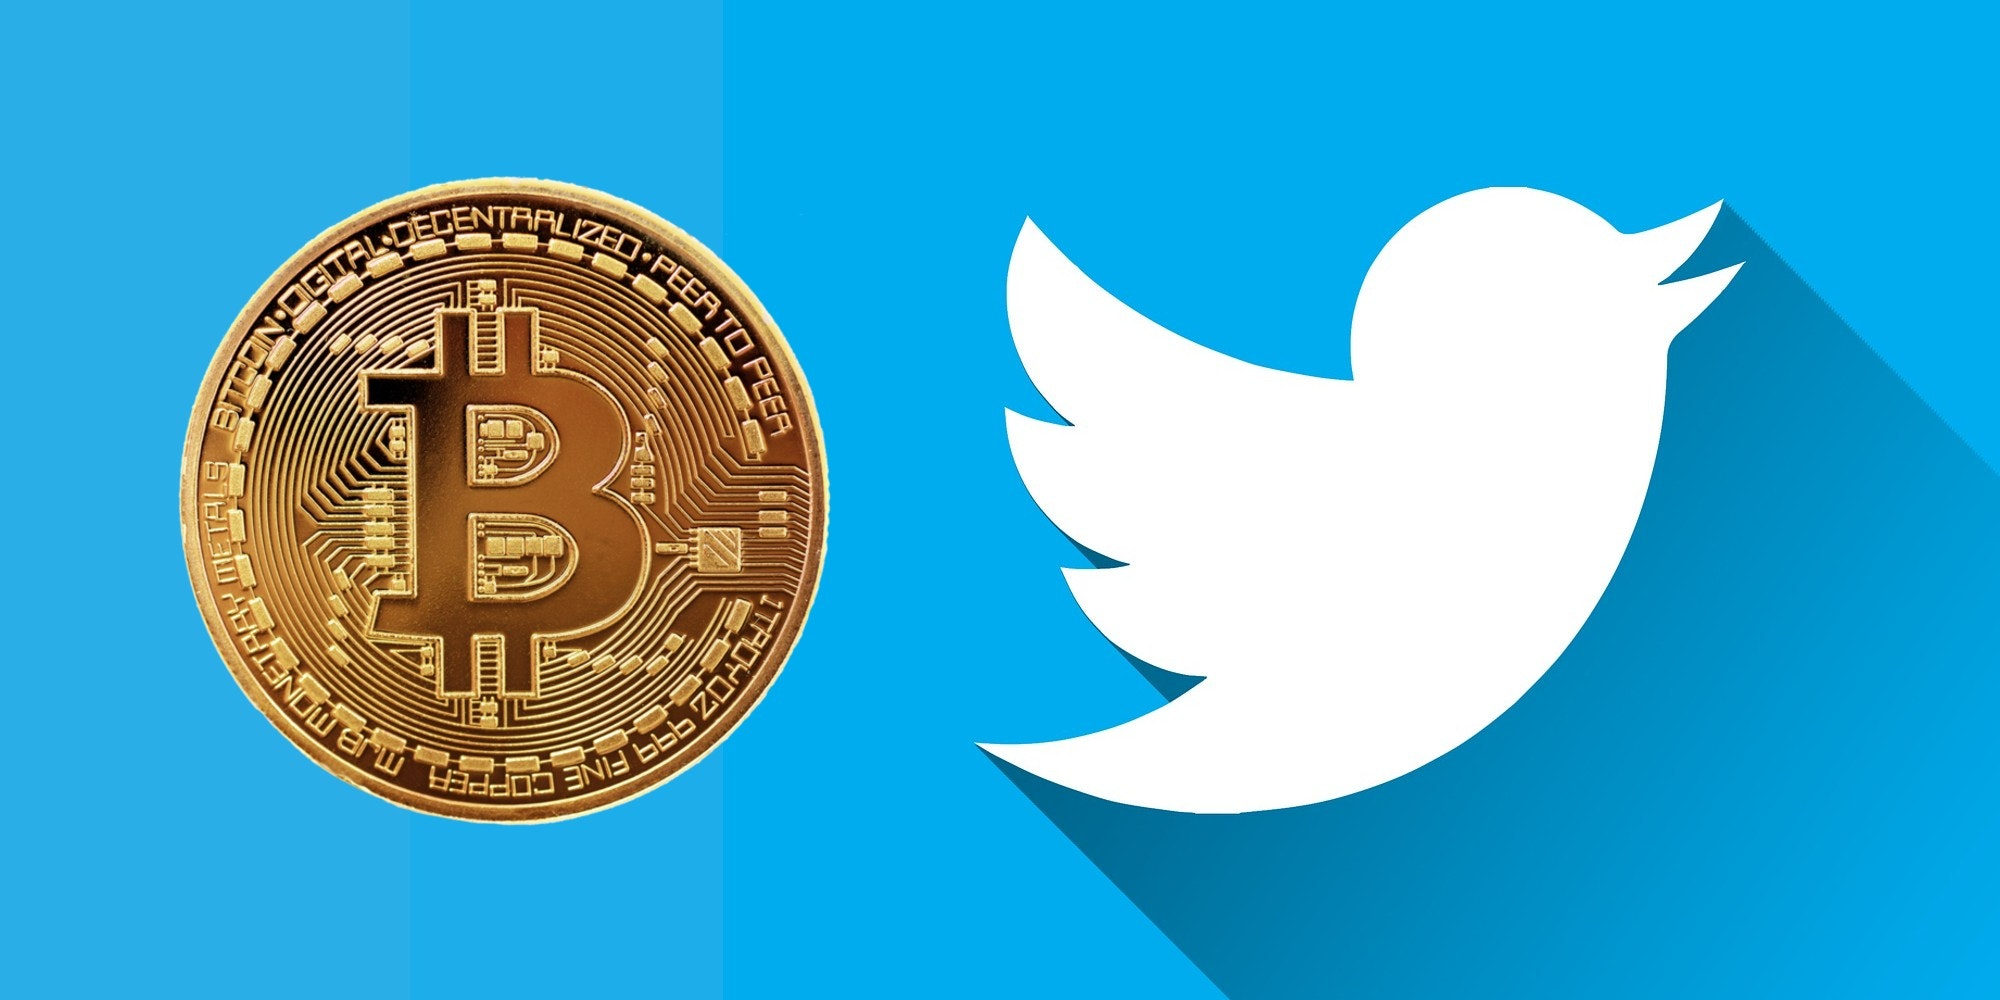 A bitcoin next to the Twitter logo